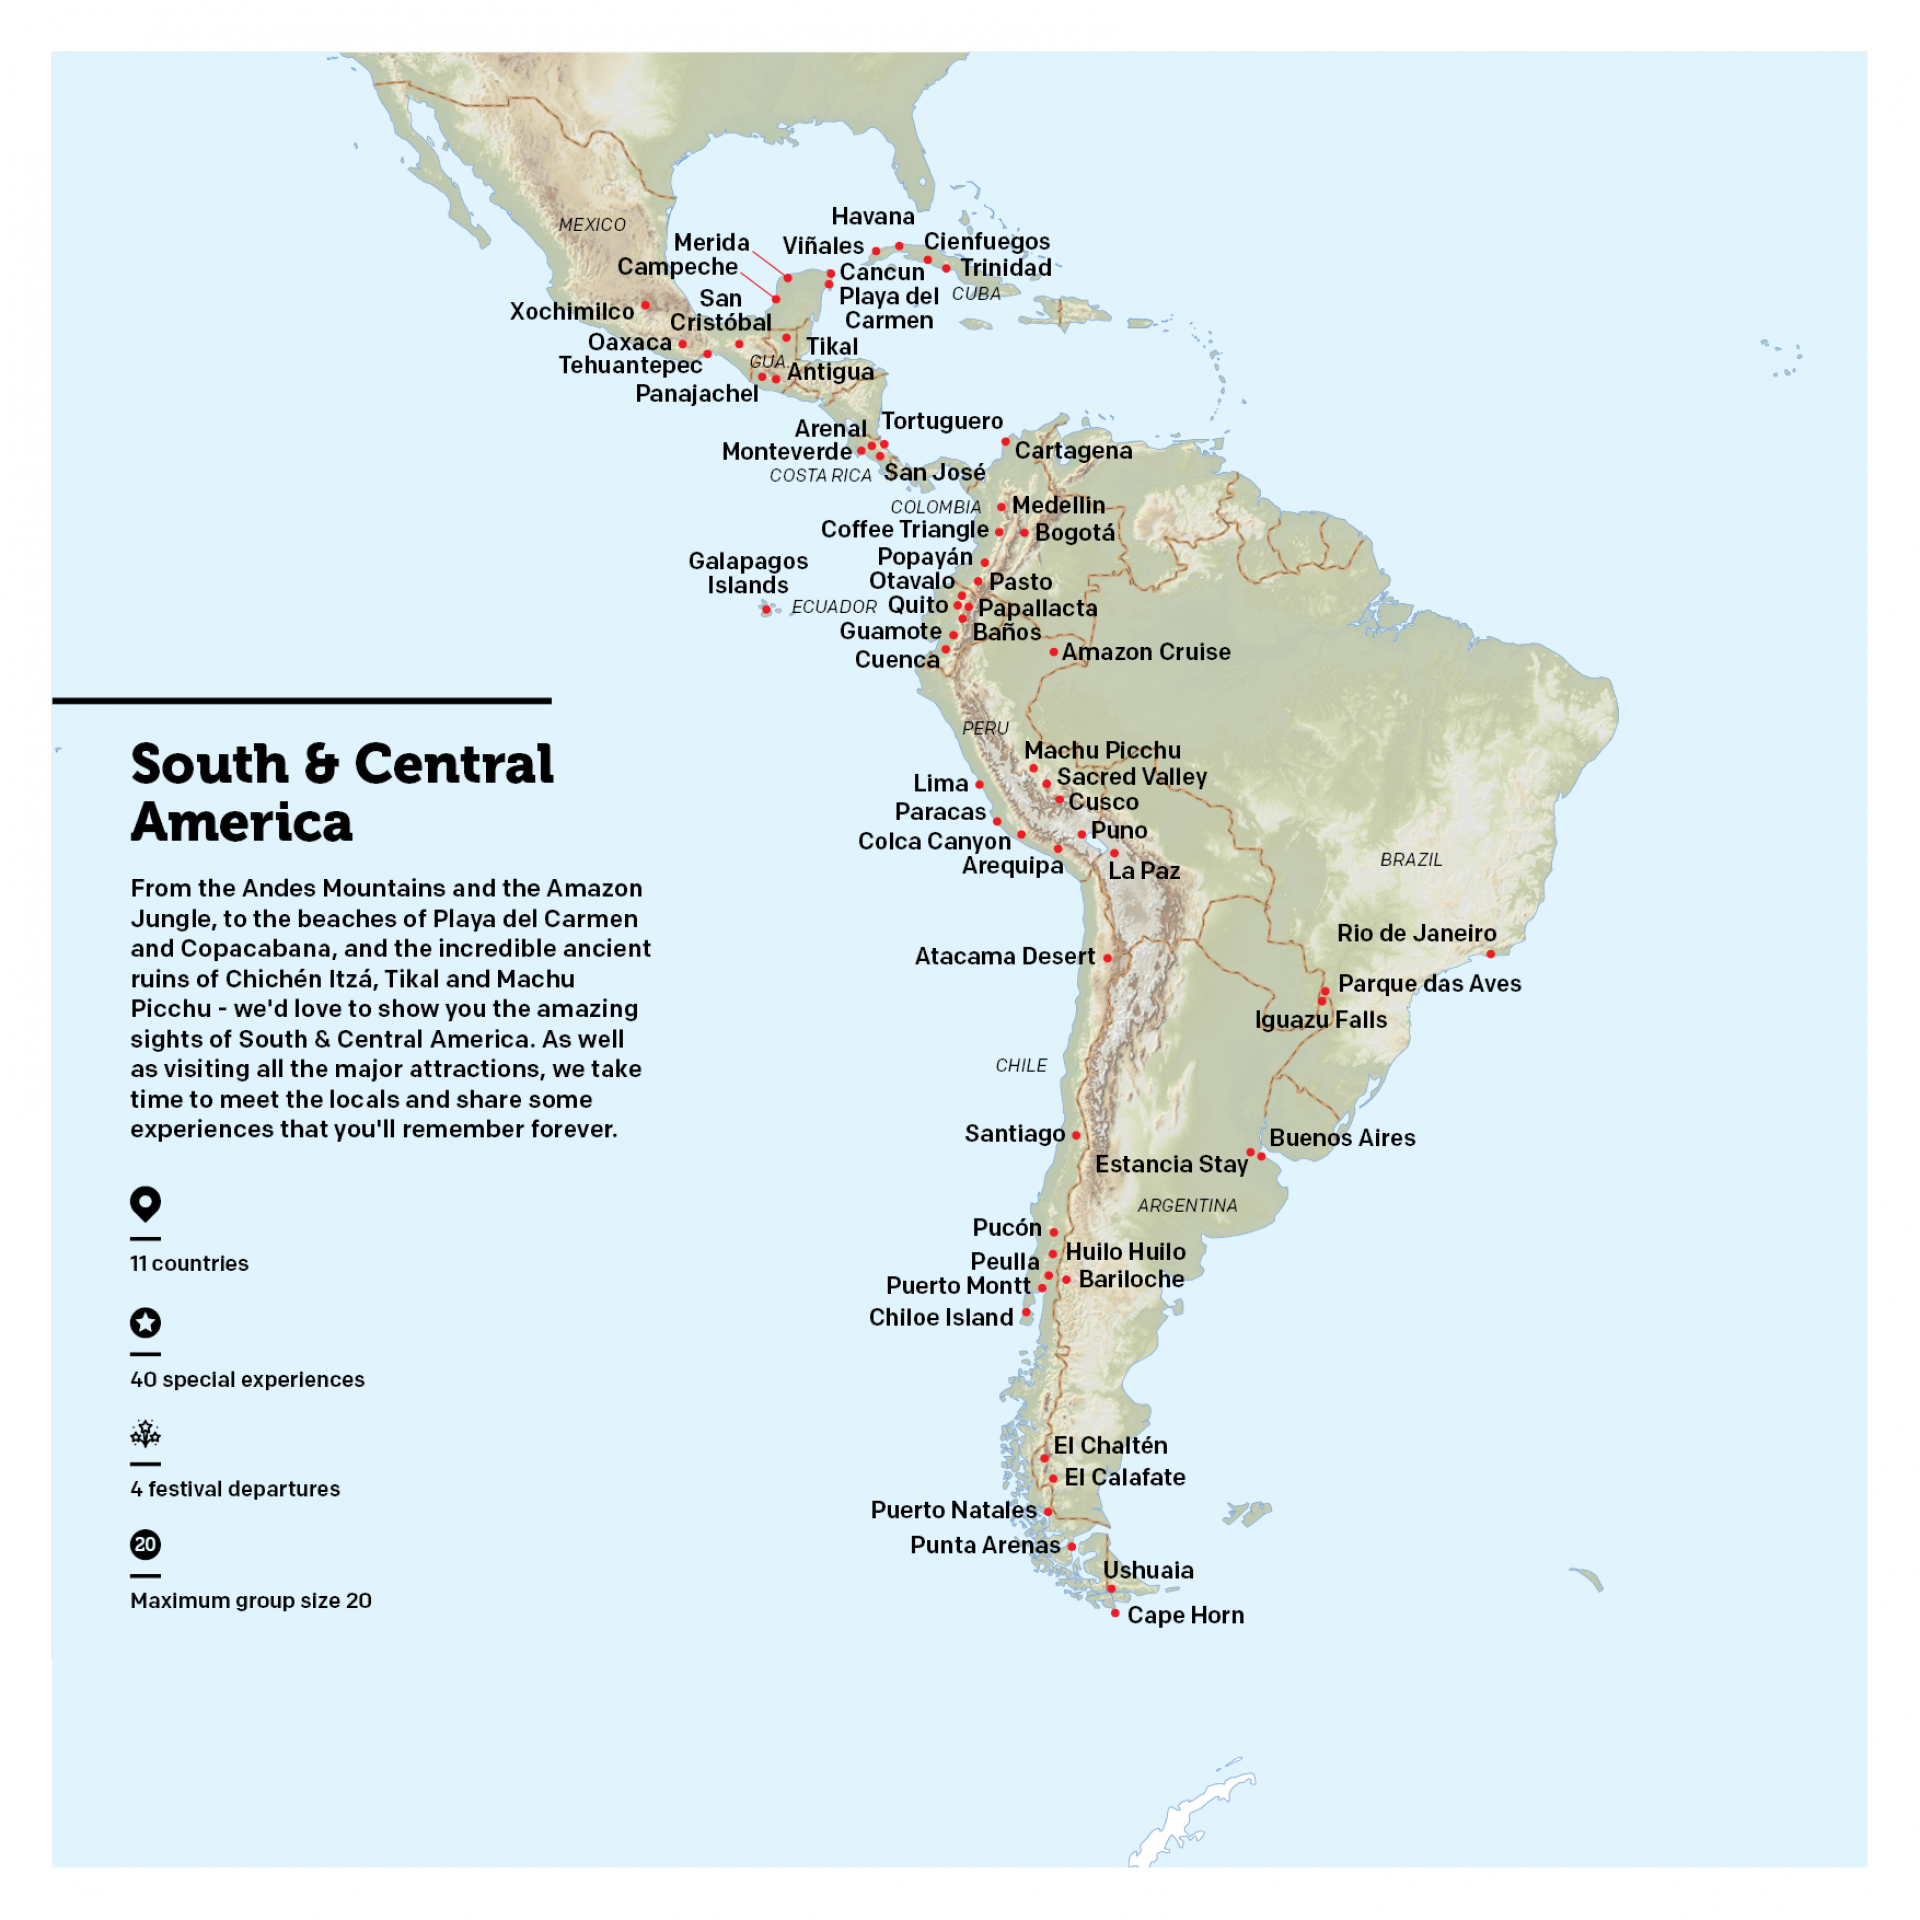 Map of South & Central America